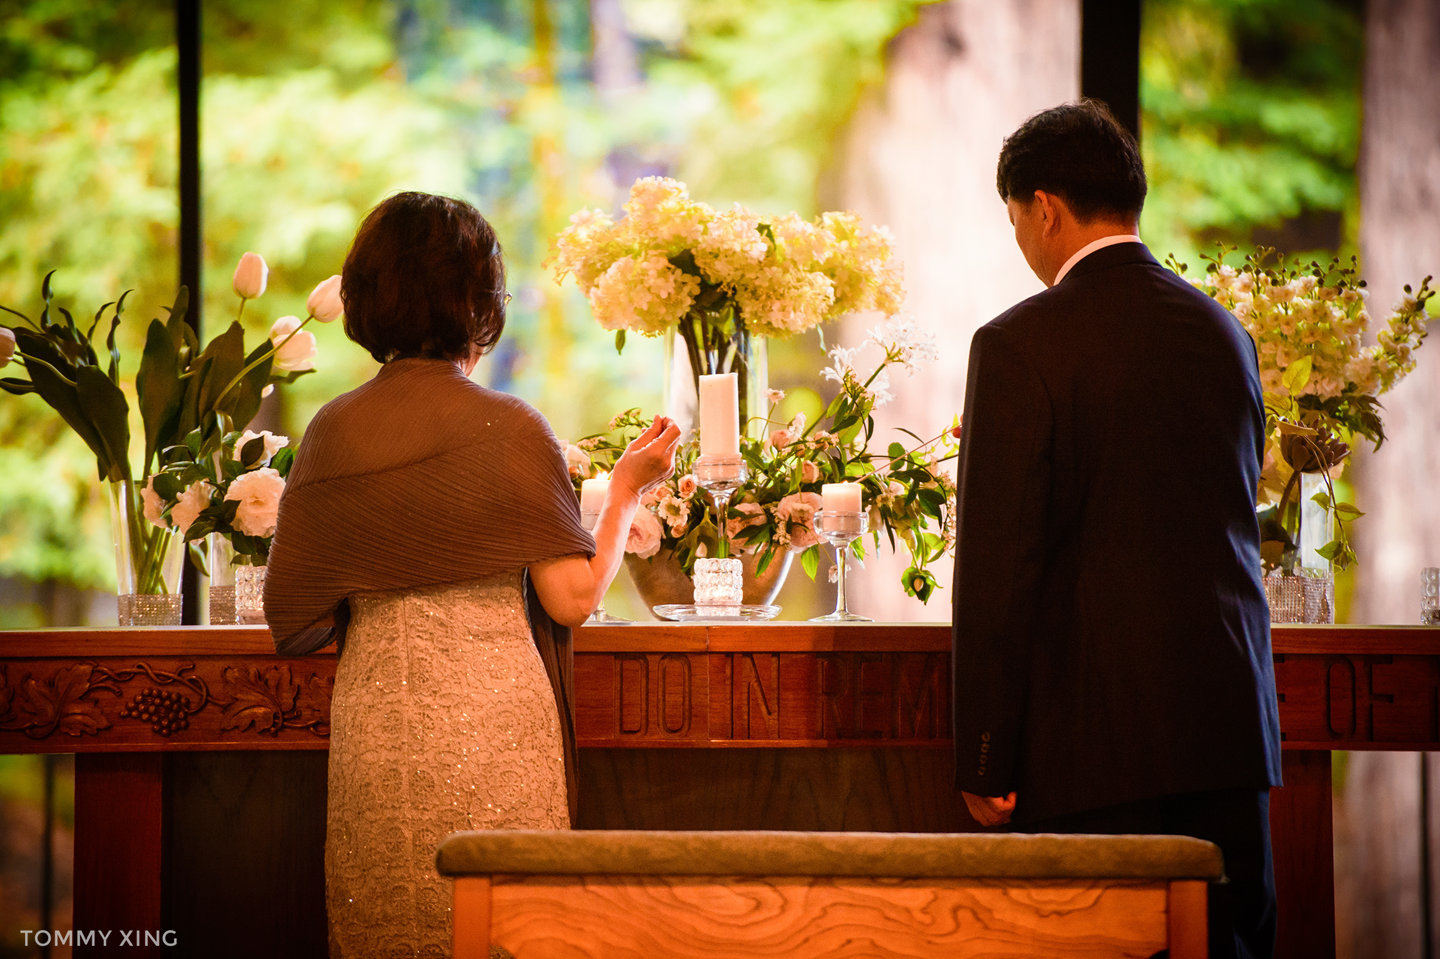 San Francisco Wedding Photography Valley Presbyterian Church WEDDING Tommy Xing Photography 洛杉矶旧金山婚礼婚纱照摄影师061.jpg